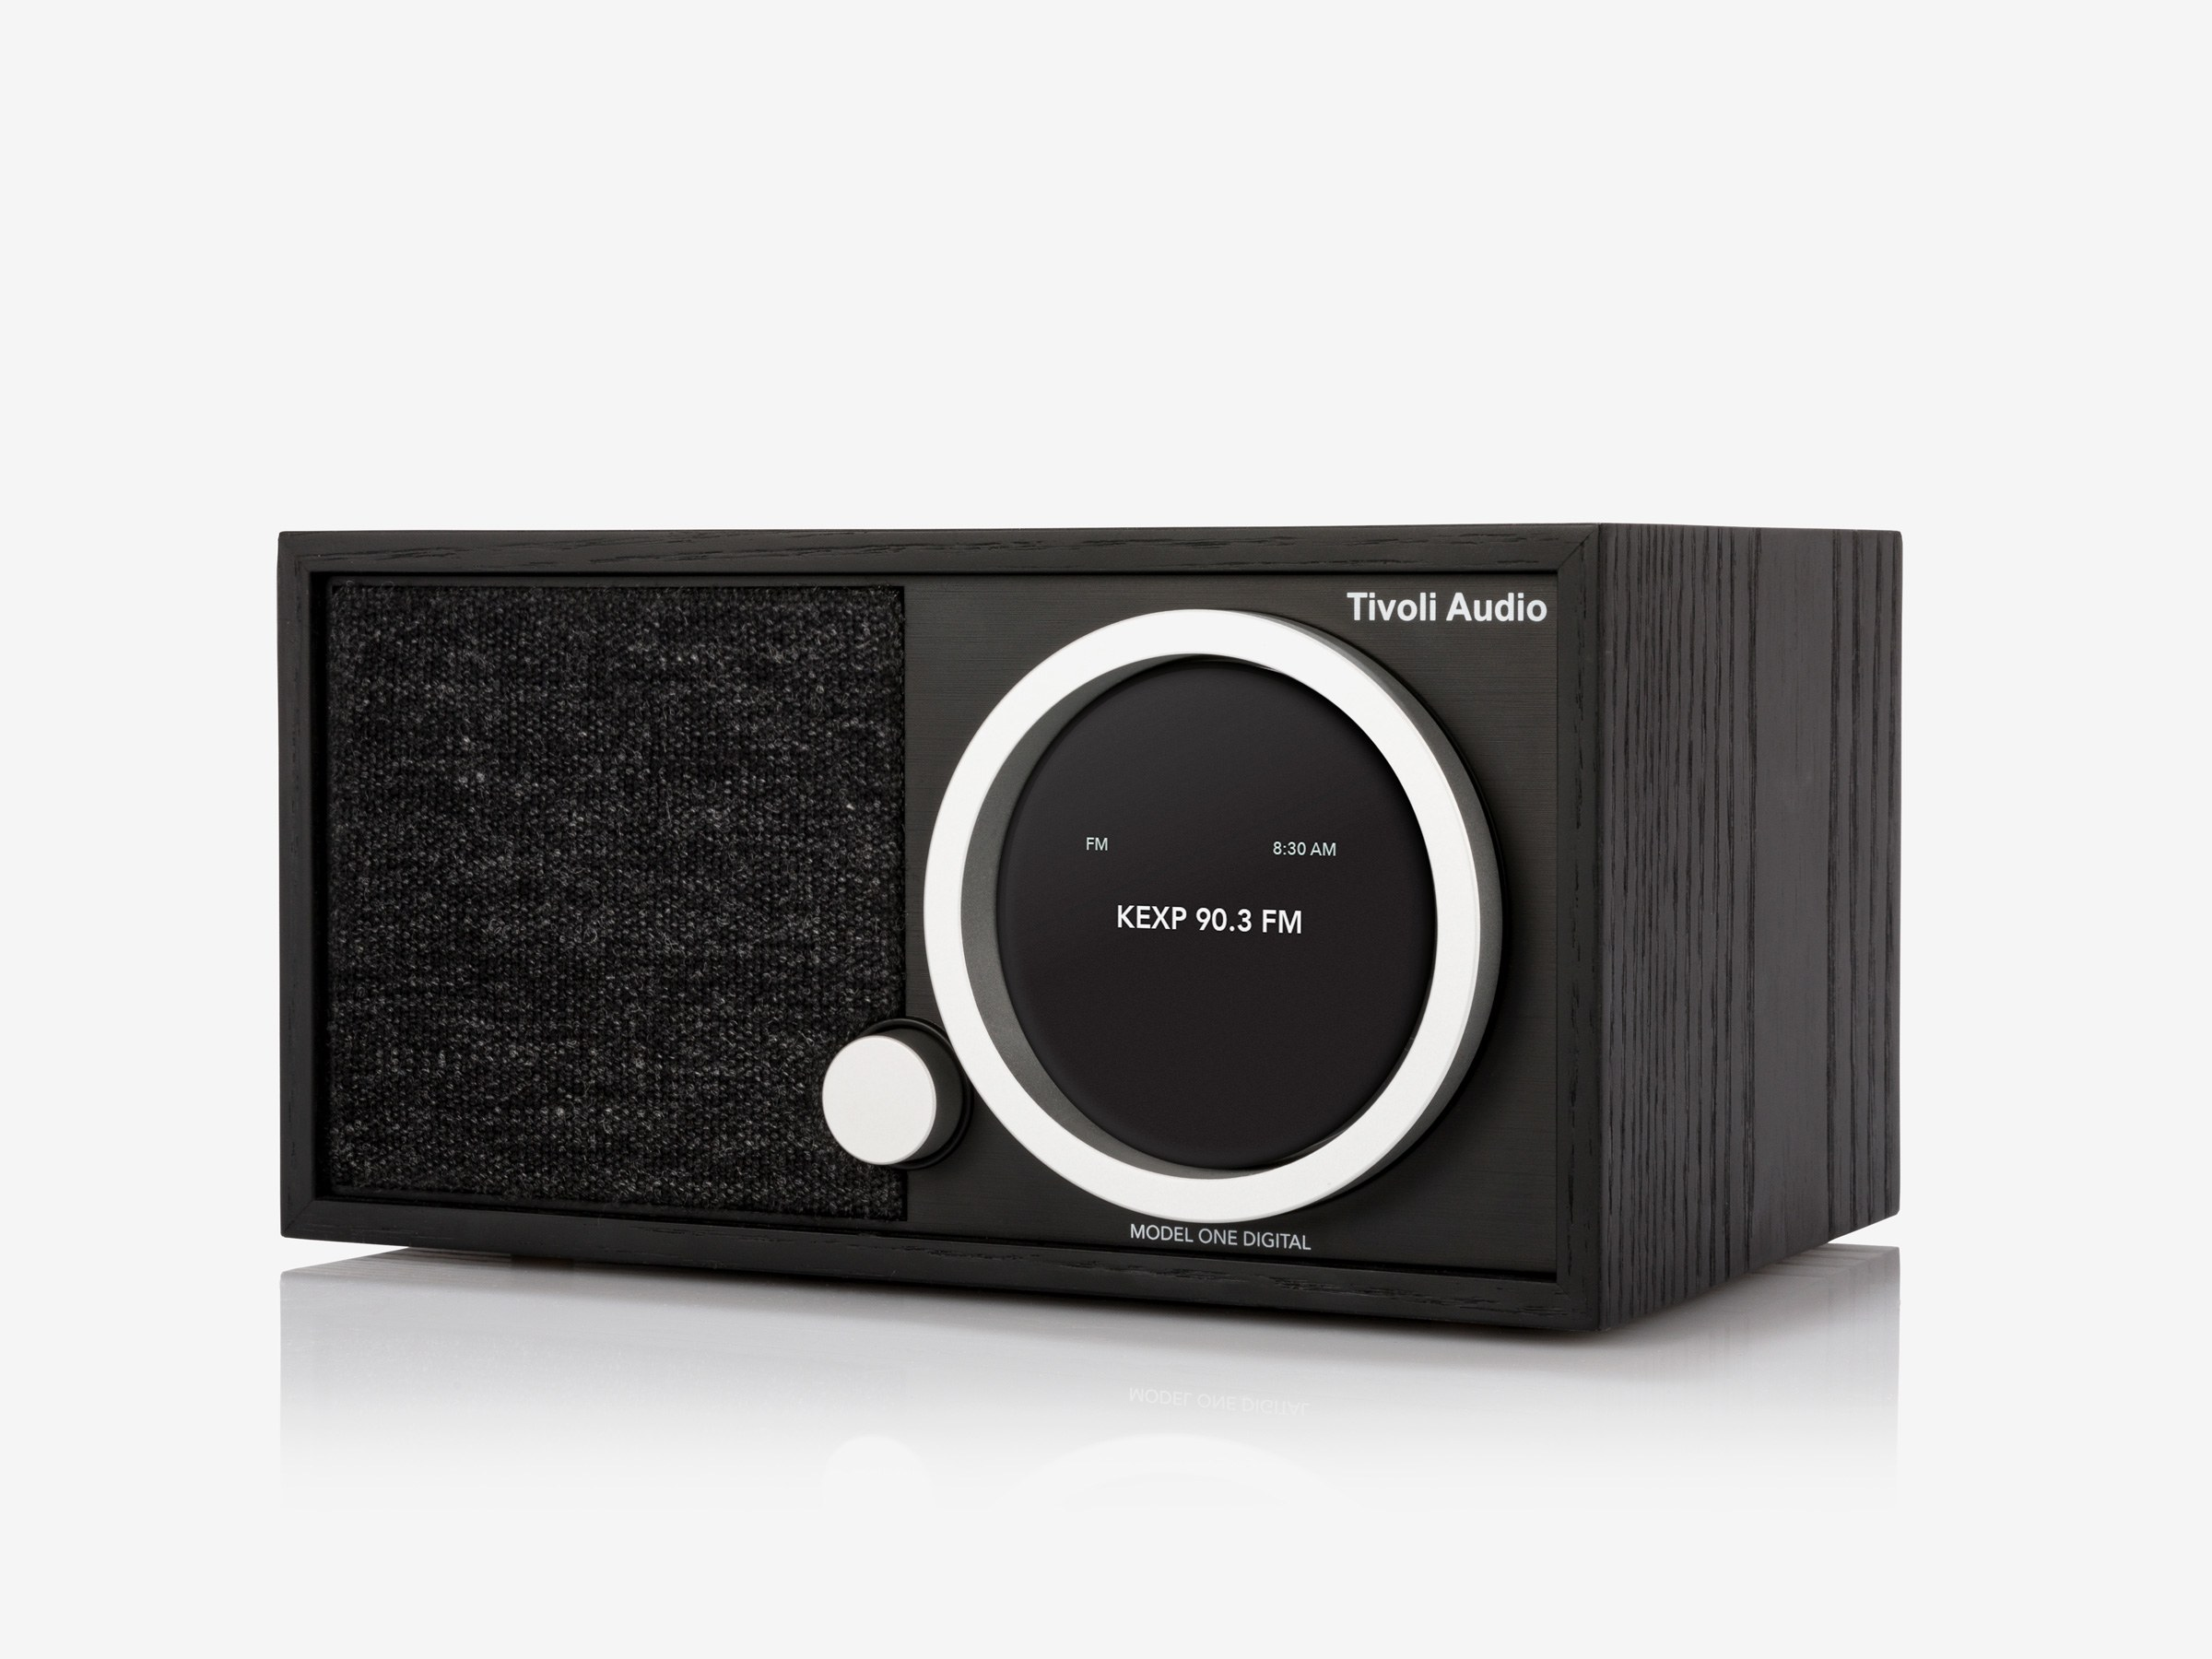 Terrific Tivoli Model One Digital Review The Classic Table Top Radio Gets Wiring Cloud Histehirlexornumapkesianilluminateatxorg